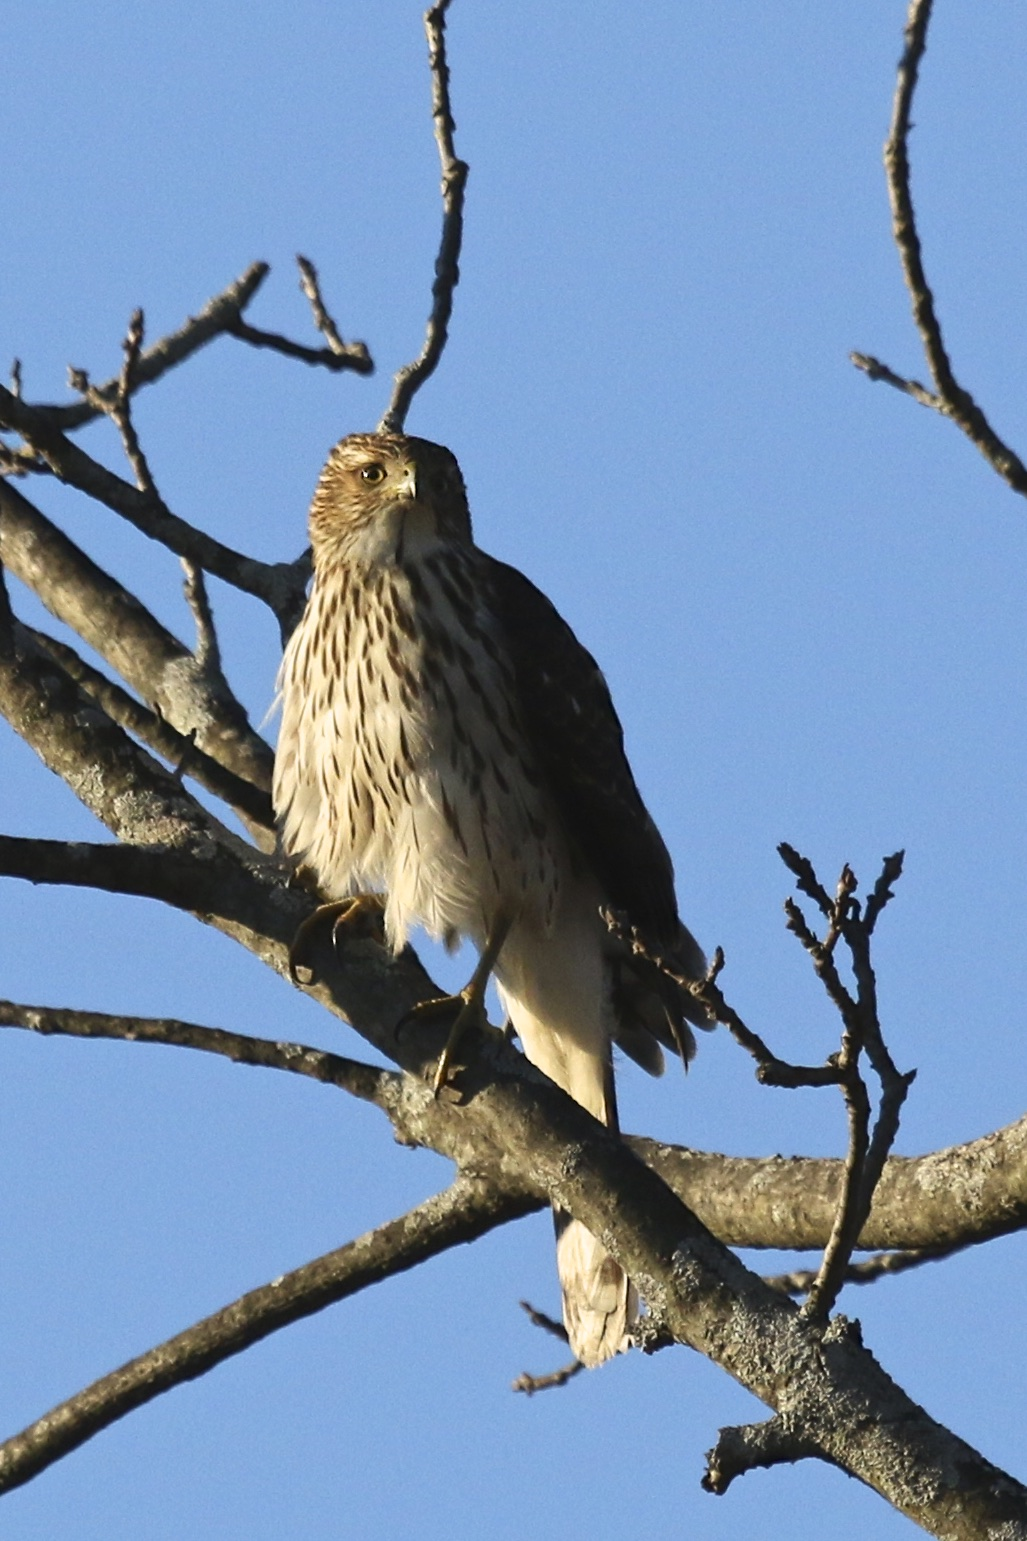 ~I'm not sure why (maybe because the bird seemed small), but I thought this bird was a Sharp-shinned Hawk when I saw it in the field. Tonight, looking at photos I am thinking it is a Cooper's Hawk, possibly a juvenile male? Black Dirt Region, 1/3/16.~